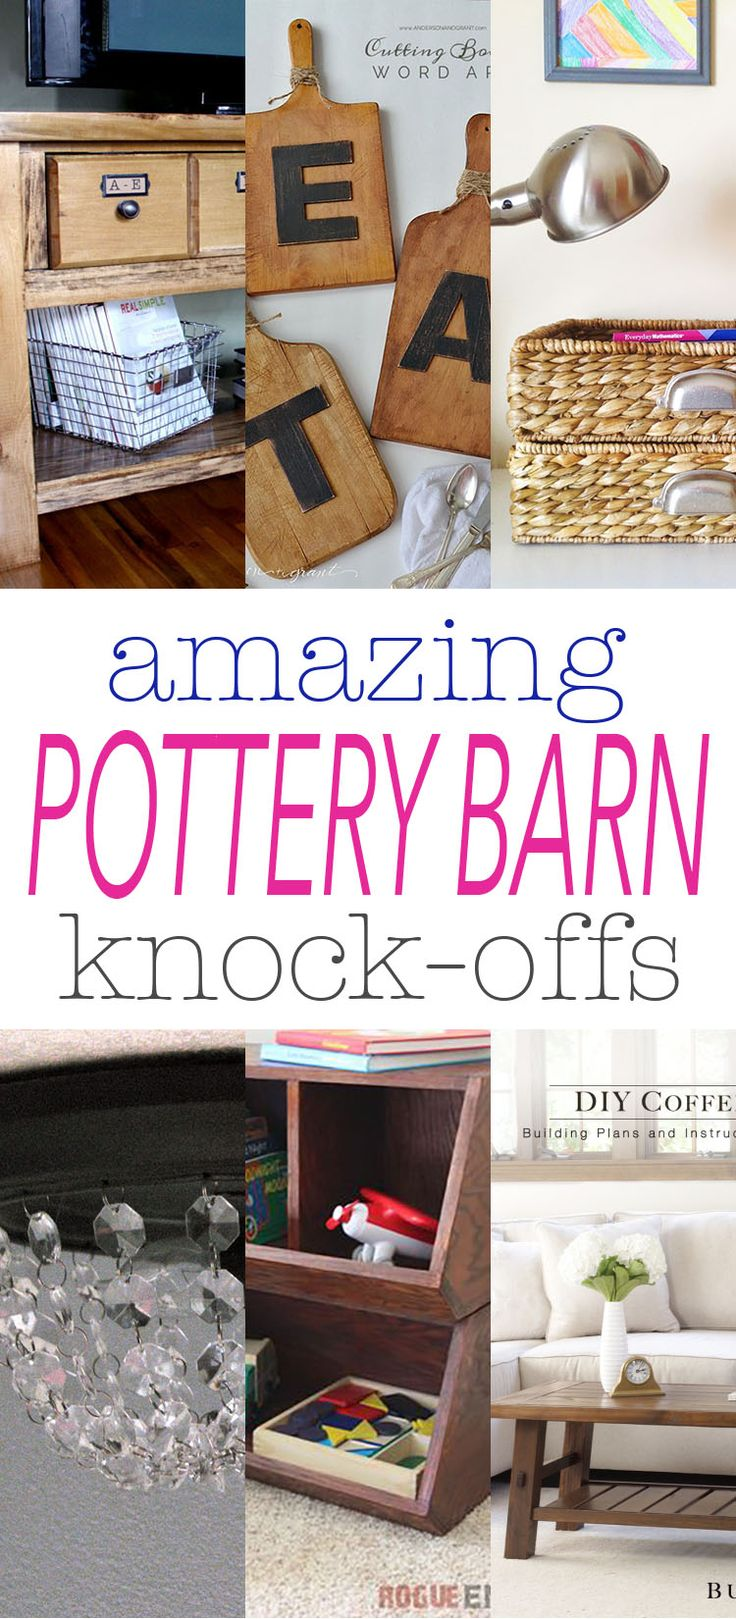 Best 25 pottery barn mirror ideas on pinterest pottery barn look pottery barn bath and - Modern furniture knock offs ...